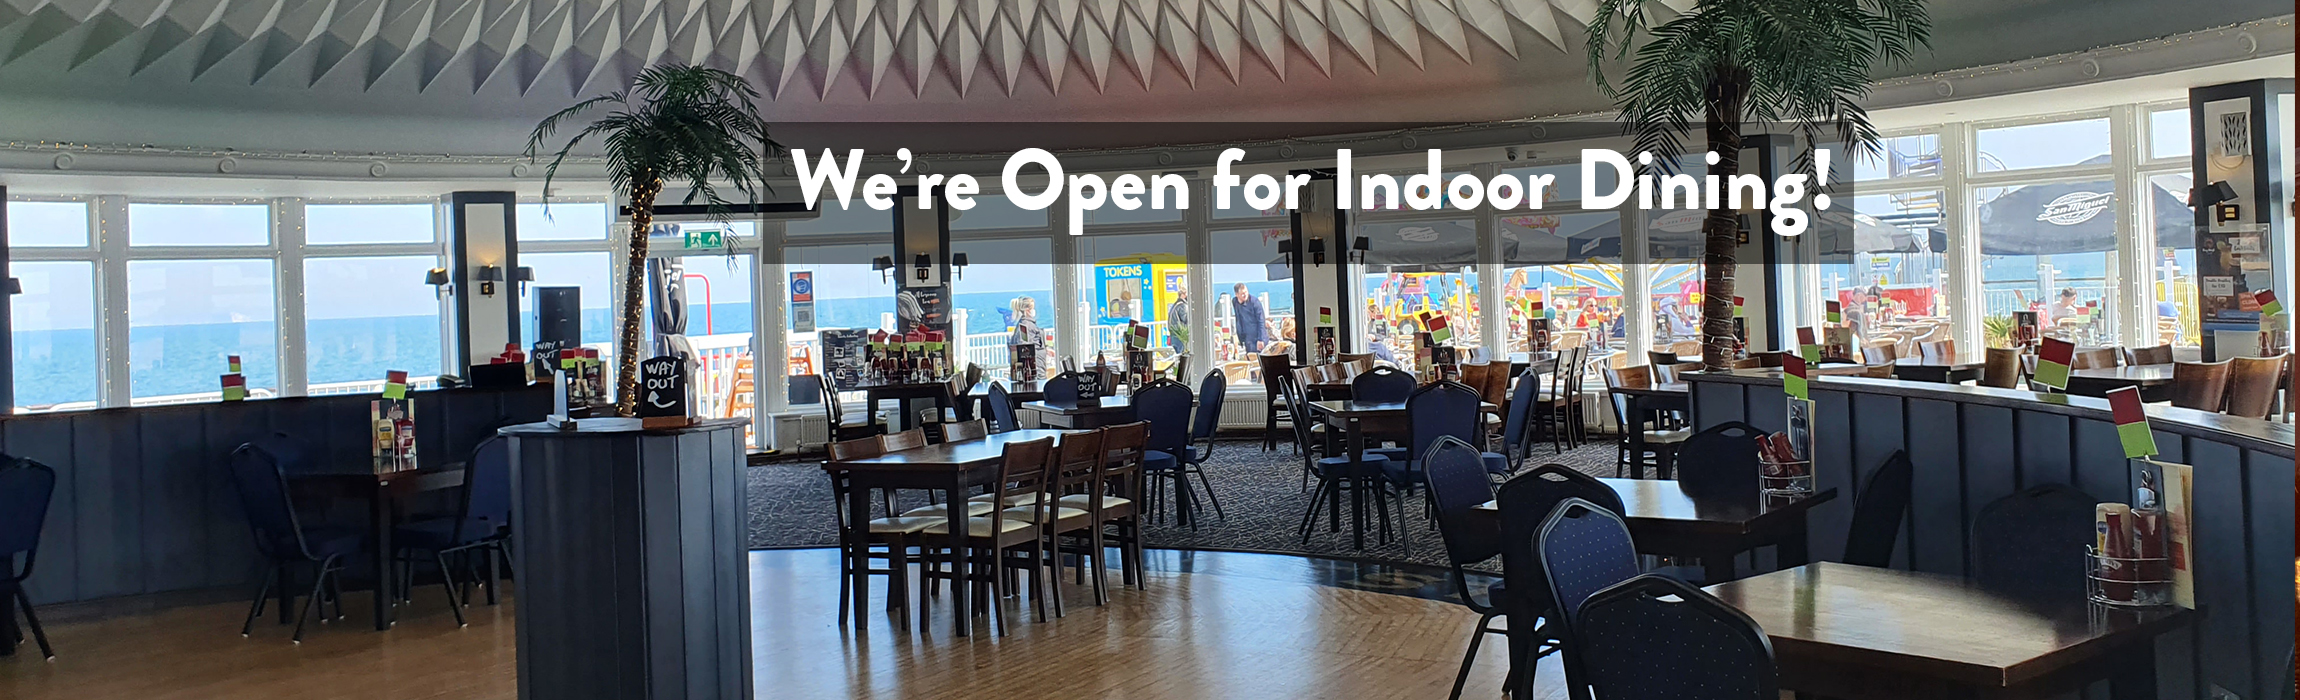 Open for Indoor Dining